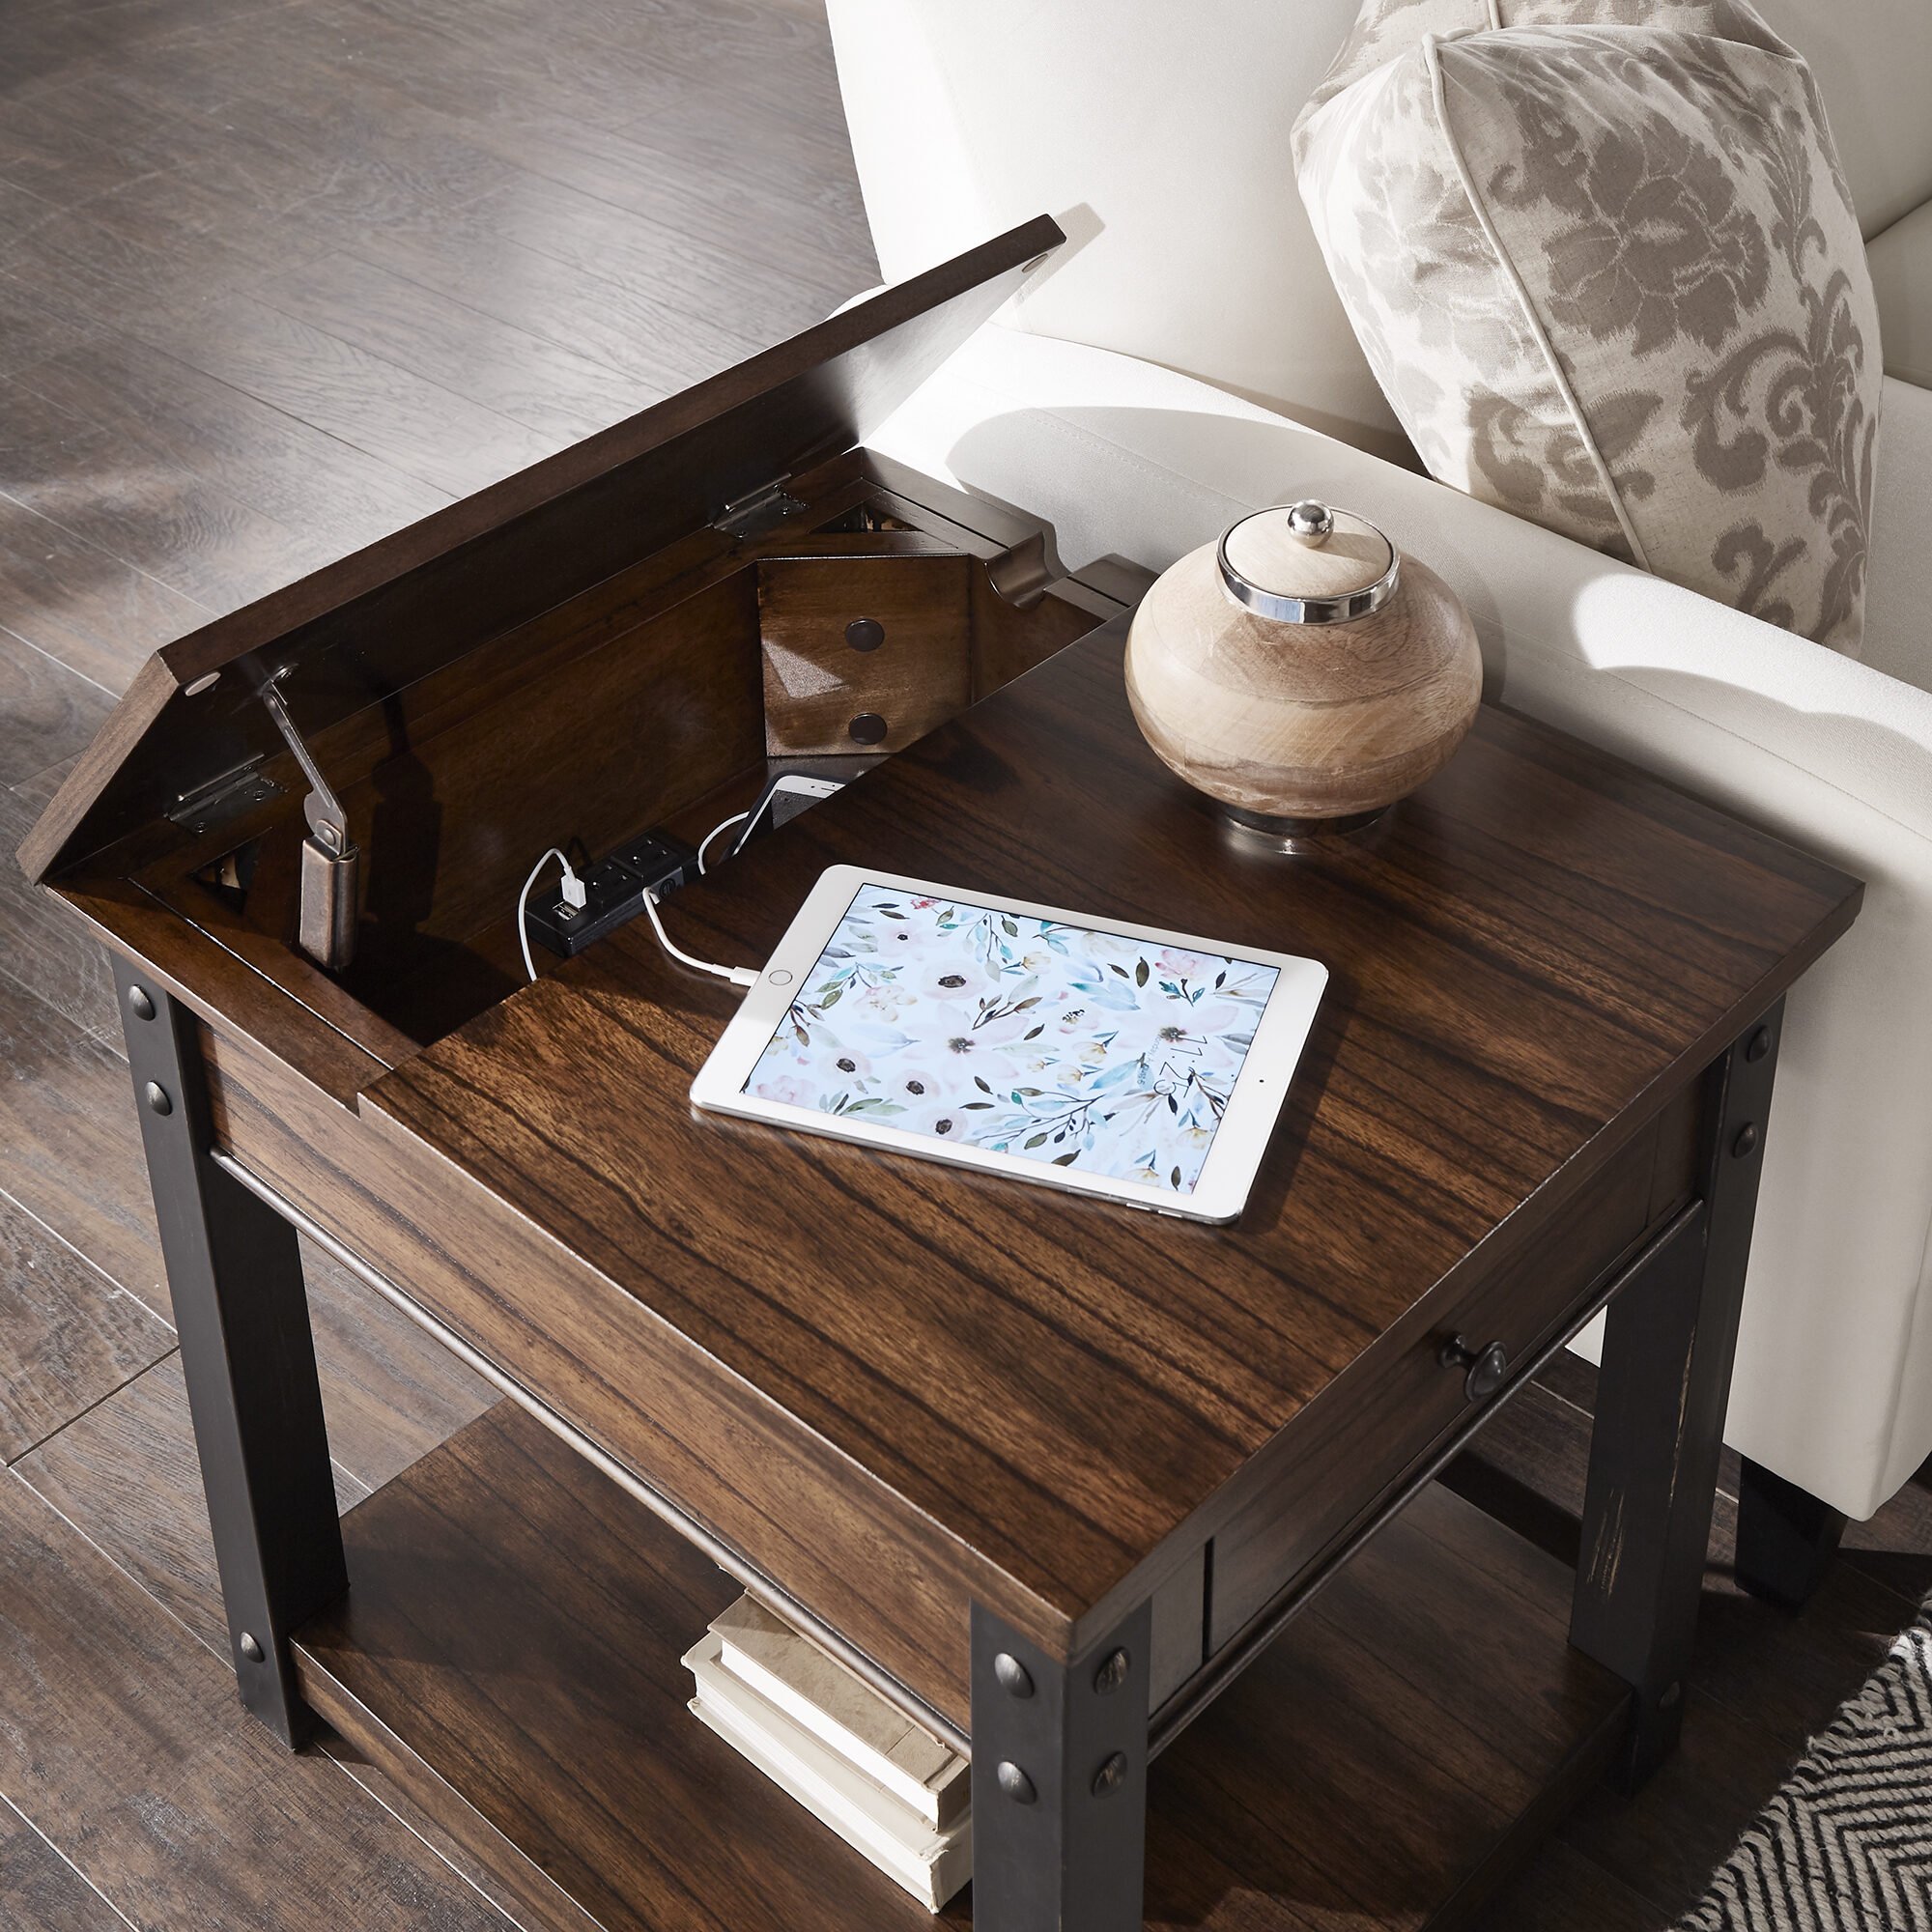 Nightstands make great small space furniture. This one pictured, the Richter Dark Cherry Finish End Table by iNSPIRE Q Classic, comes with a single drawer, a lower open shelf, and a charging station in a compartment under the table top.